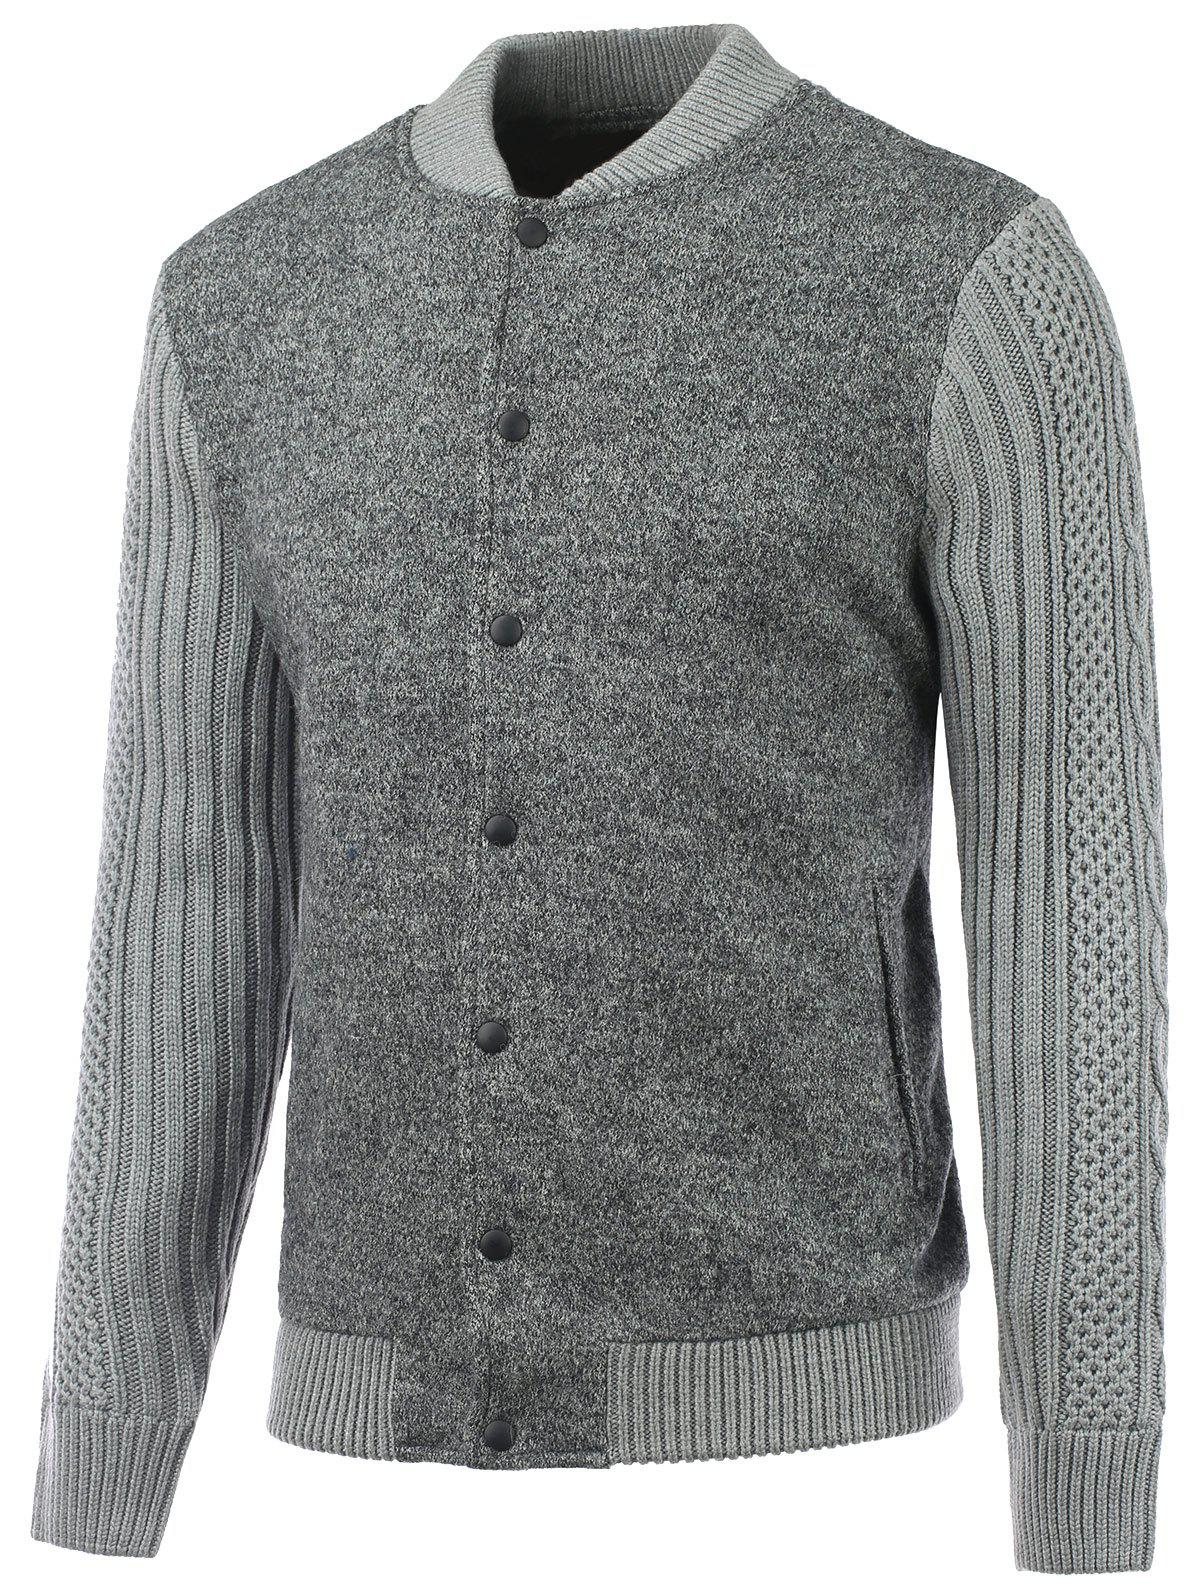 Button Up Panel Knitted JacketMen<br><br><br>Size: S<br>Color: GRAY